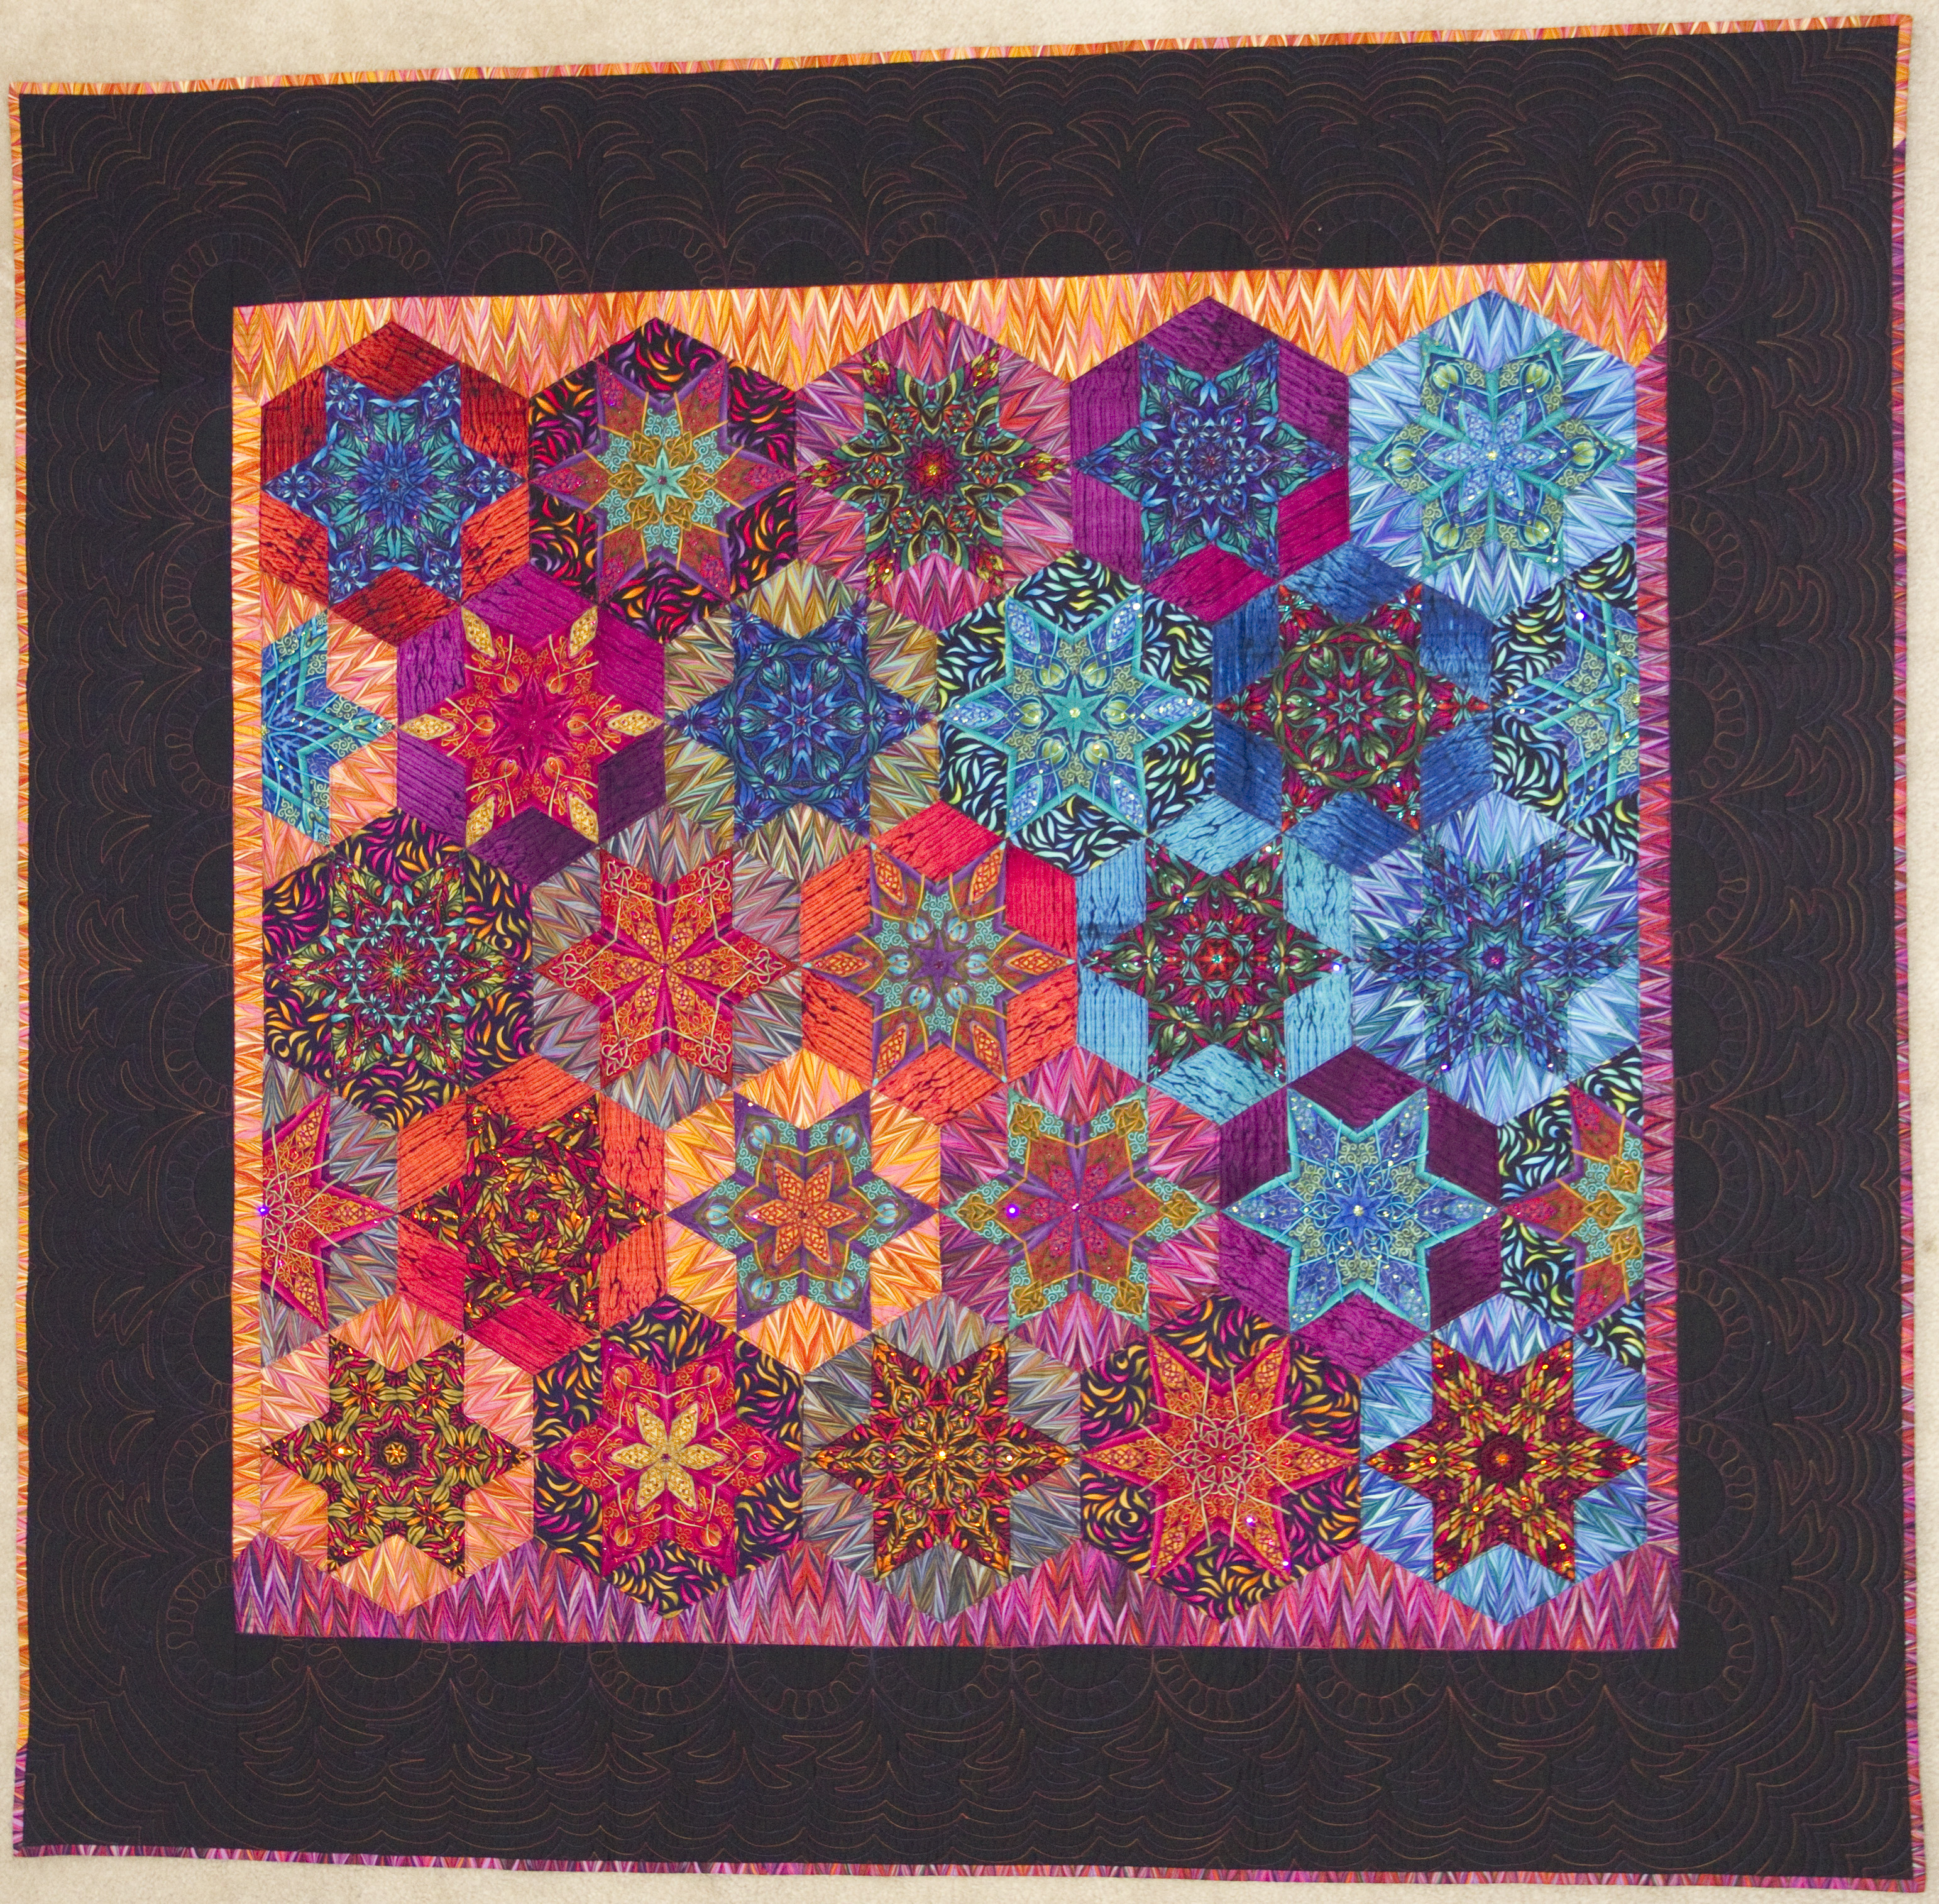 quilt these click enlarge images to on other sandy carter regina gunn img quality for enjoy detail embroidery quilts